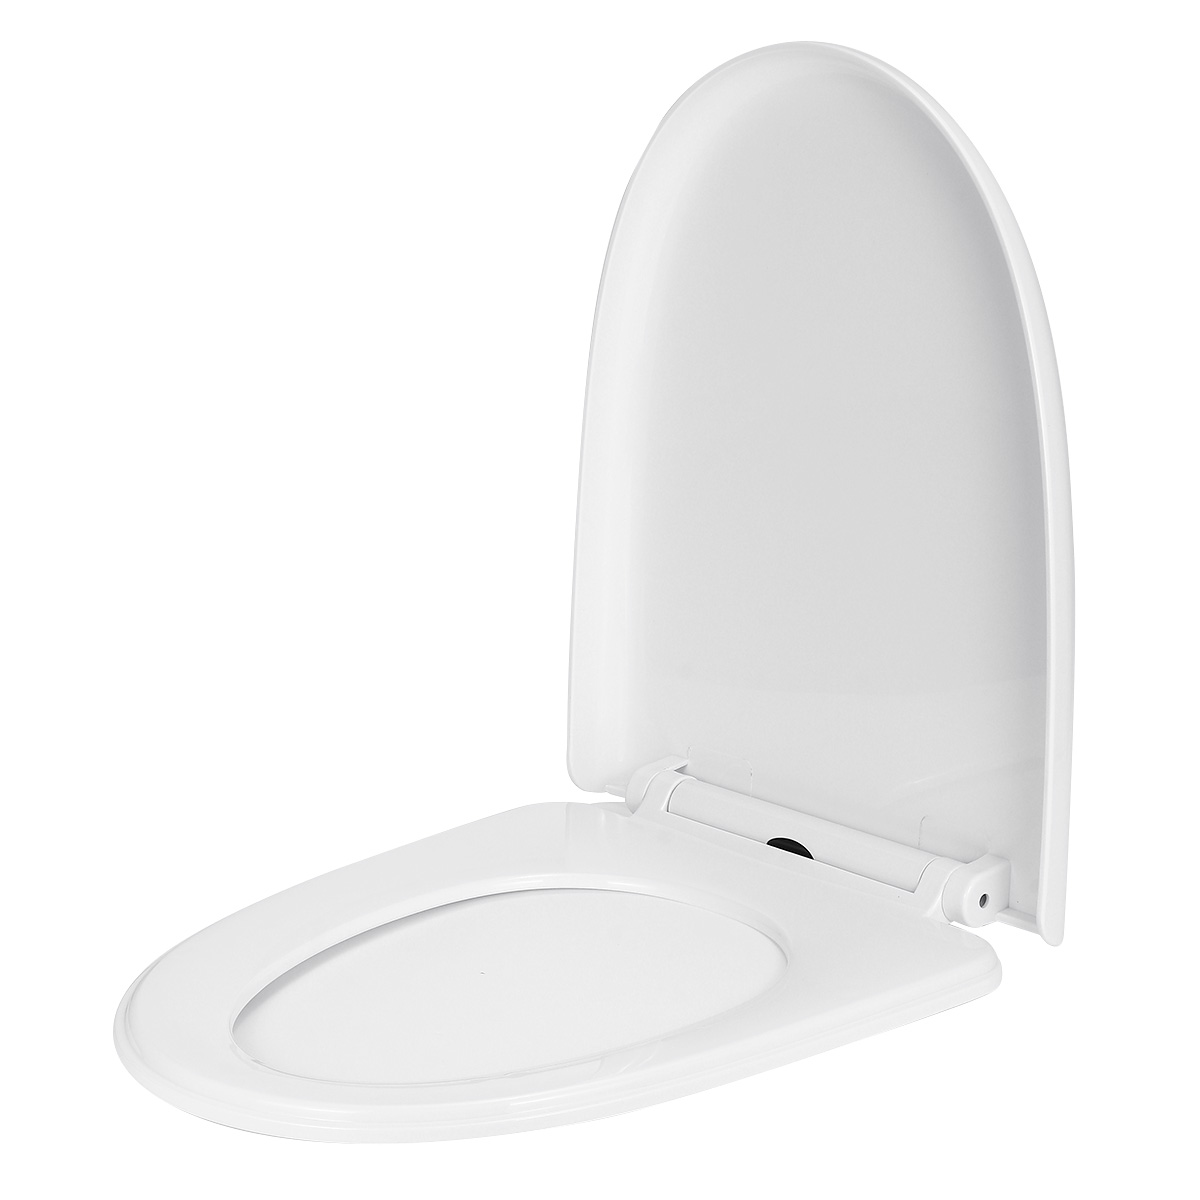 Thicken Universal Toilet Seat Lid Cover Set Replacement Slow-Close White Household 3Types Antibacterial Square Round